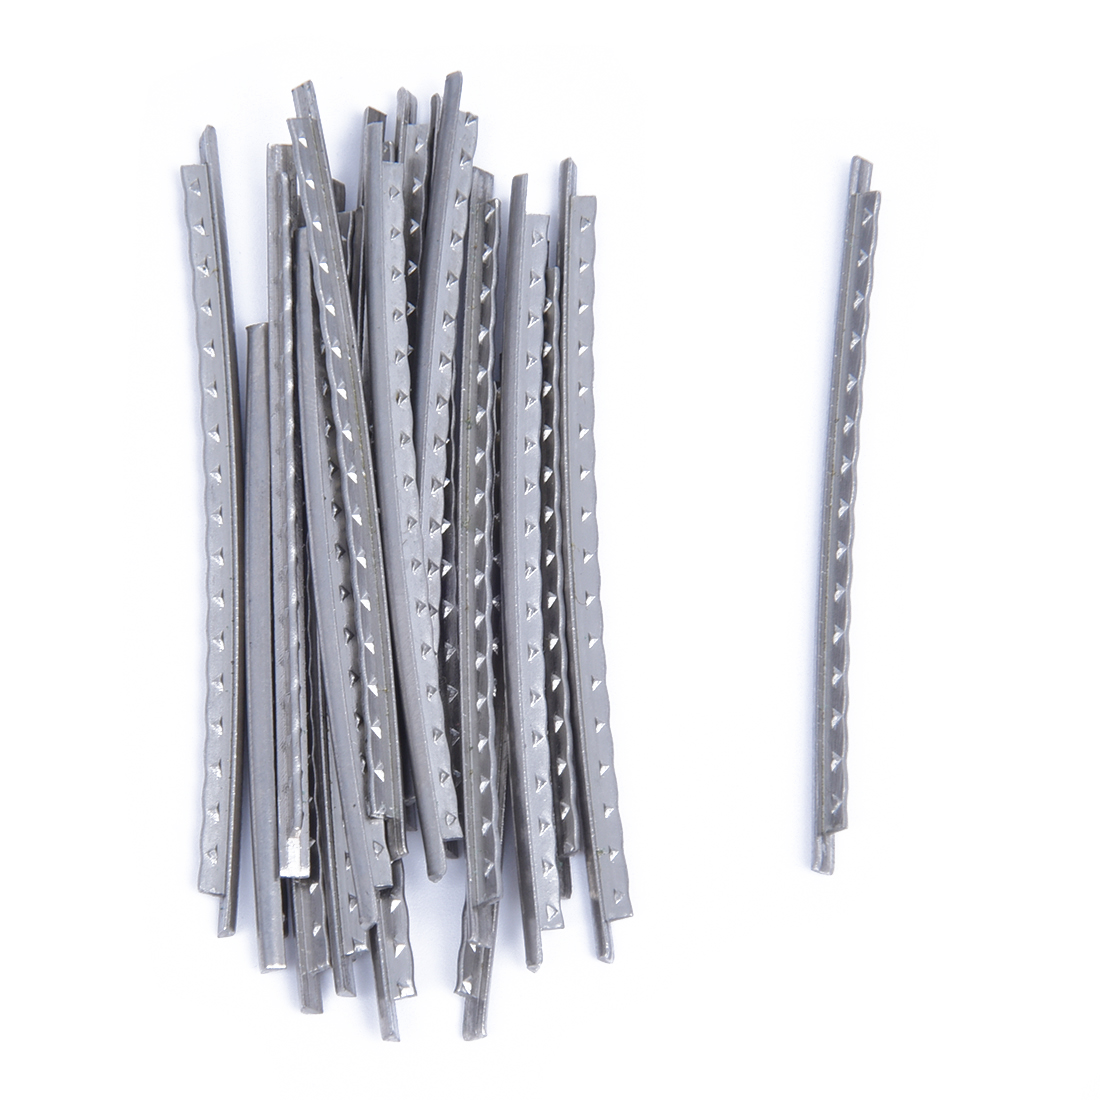 160pcs acoustic guitar fret wire fretwire set 2mm in guitar parts accessories from sports. Black Bedroom Furniture Sets. Home Design Ideas